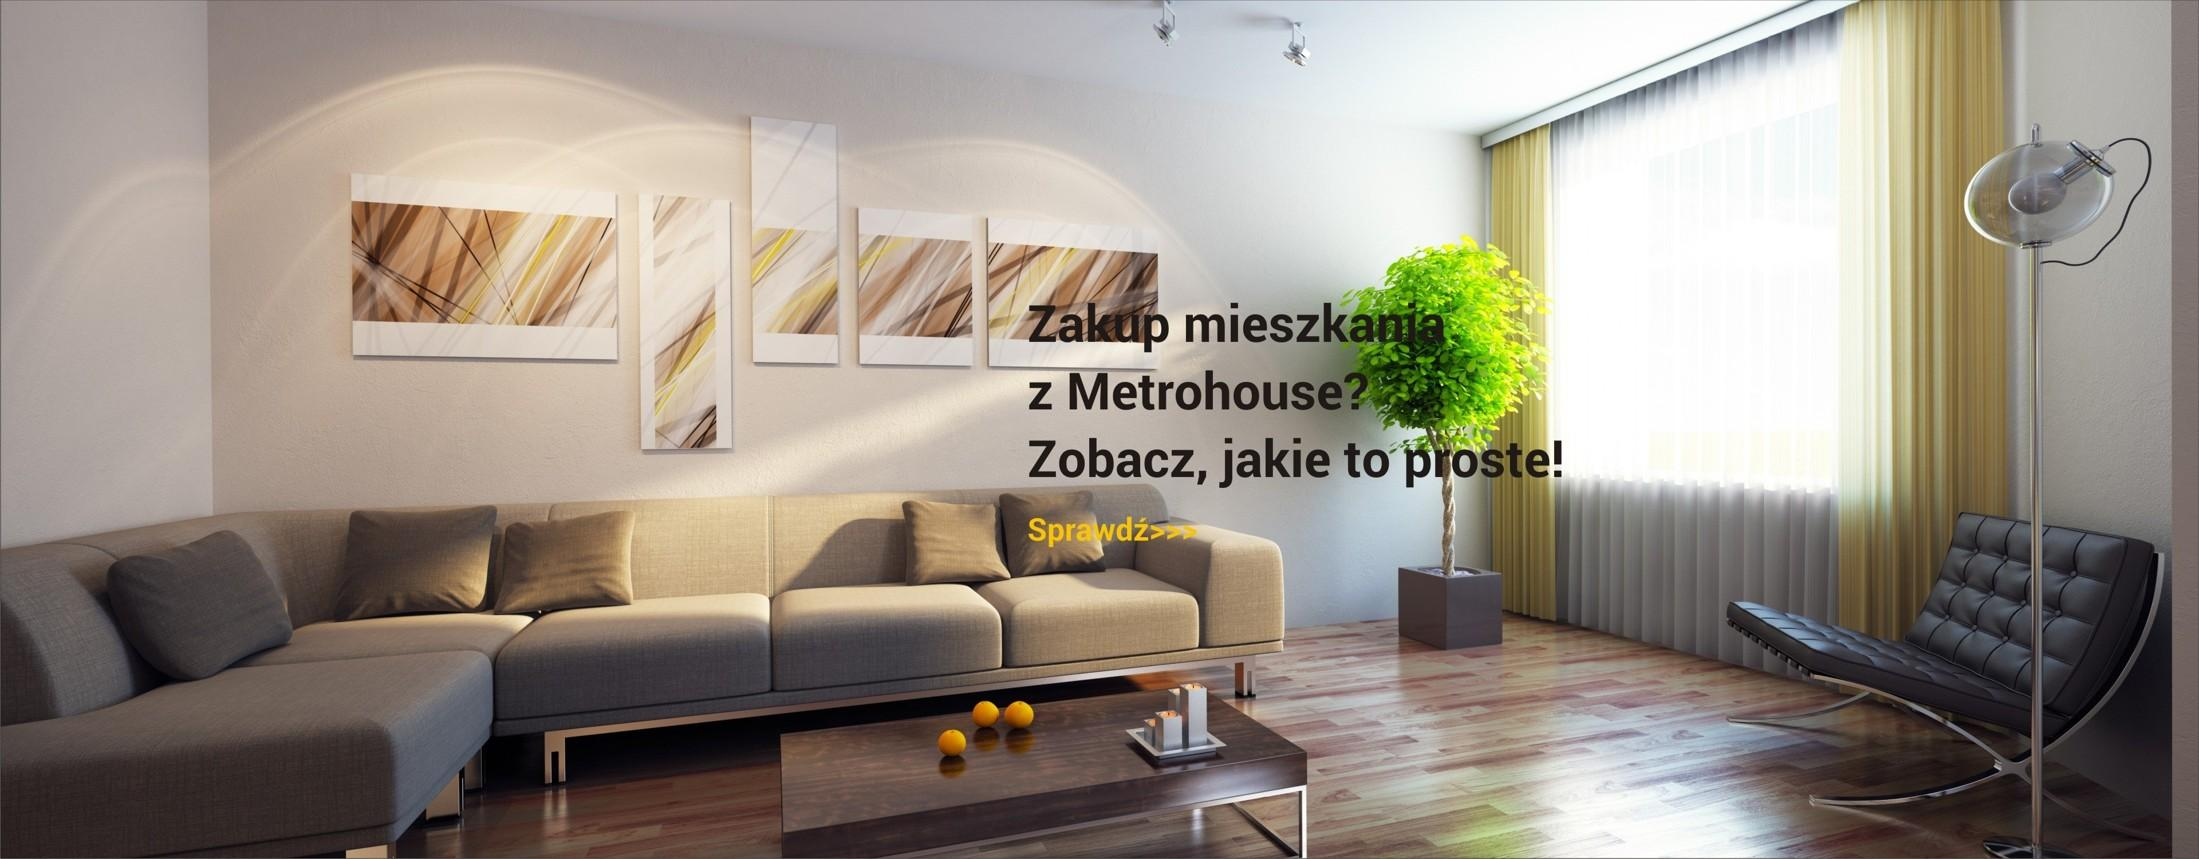 Metrohouse header slider image